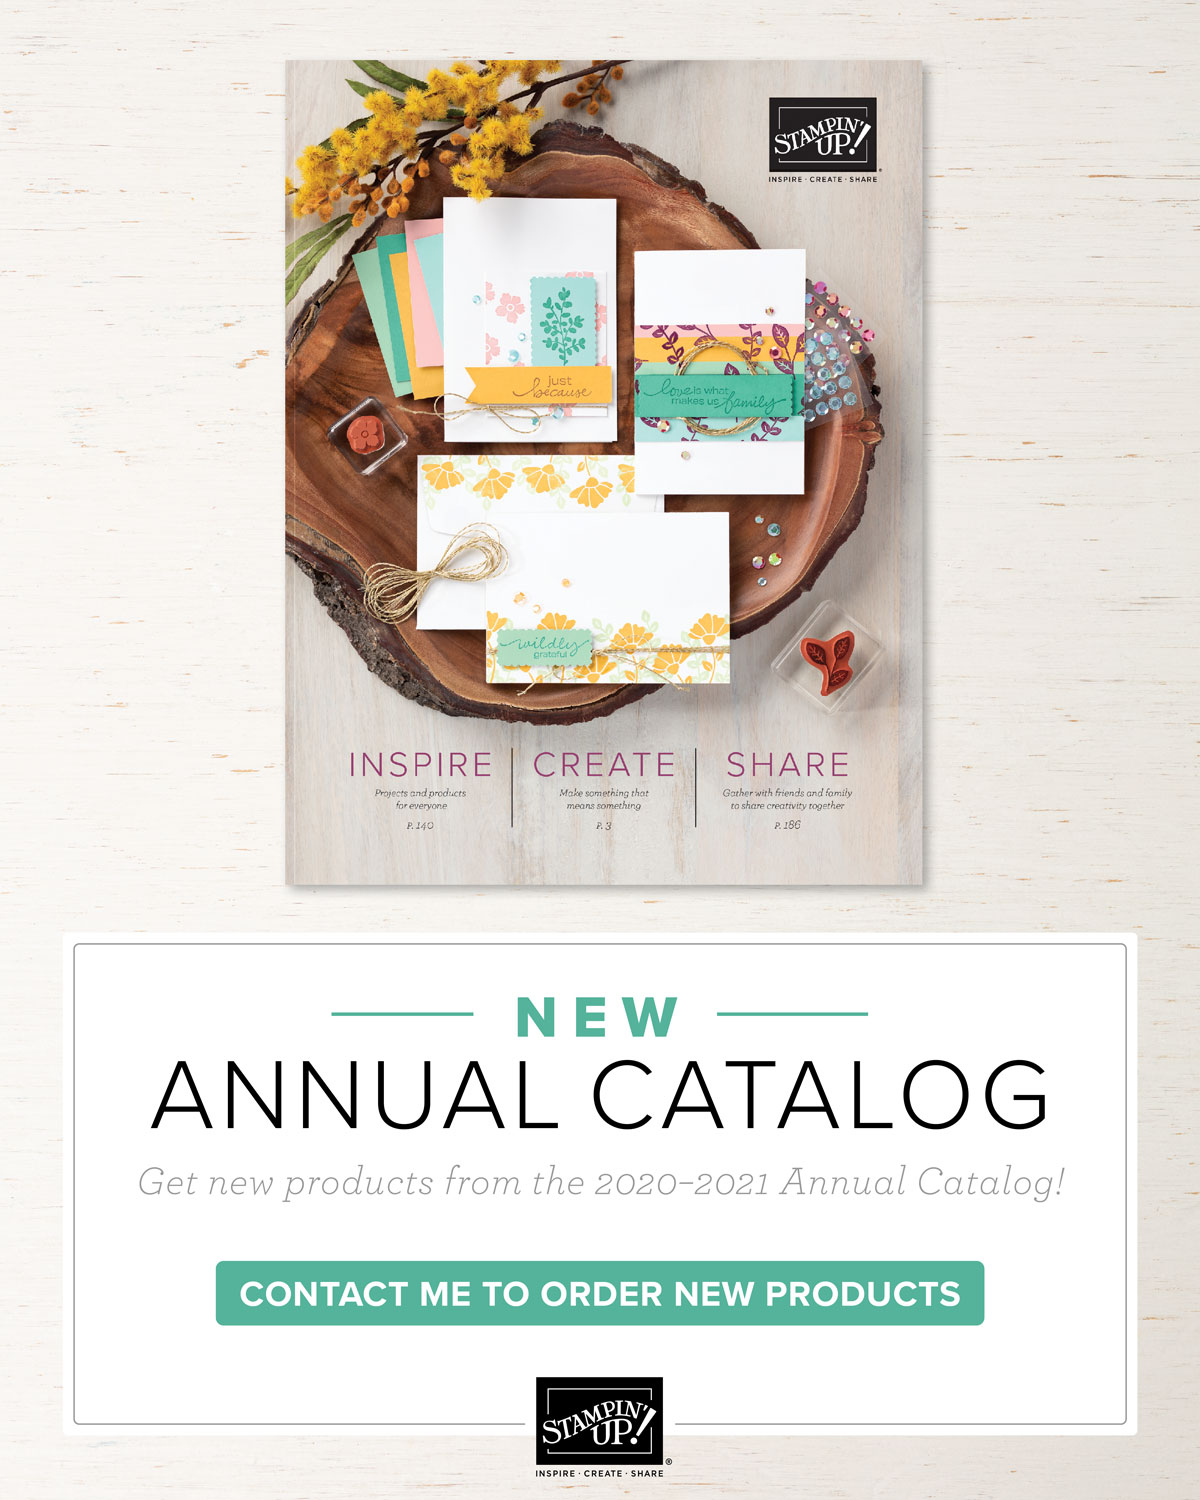 NEW ANNUAL CATALOG AVAILABLE NOW!